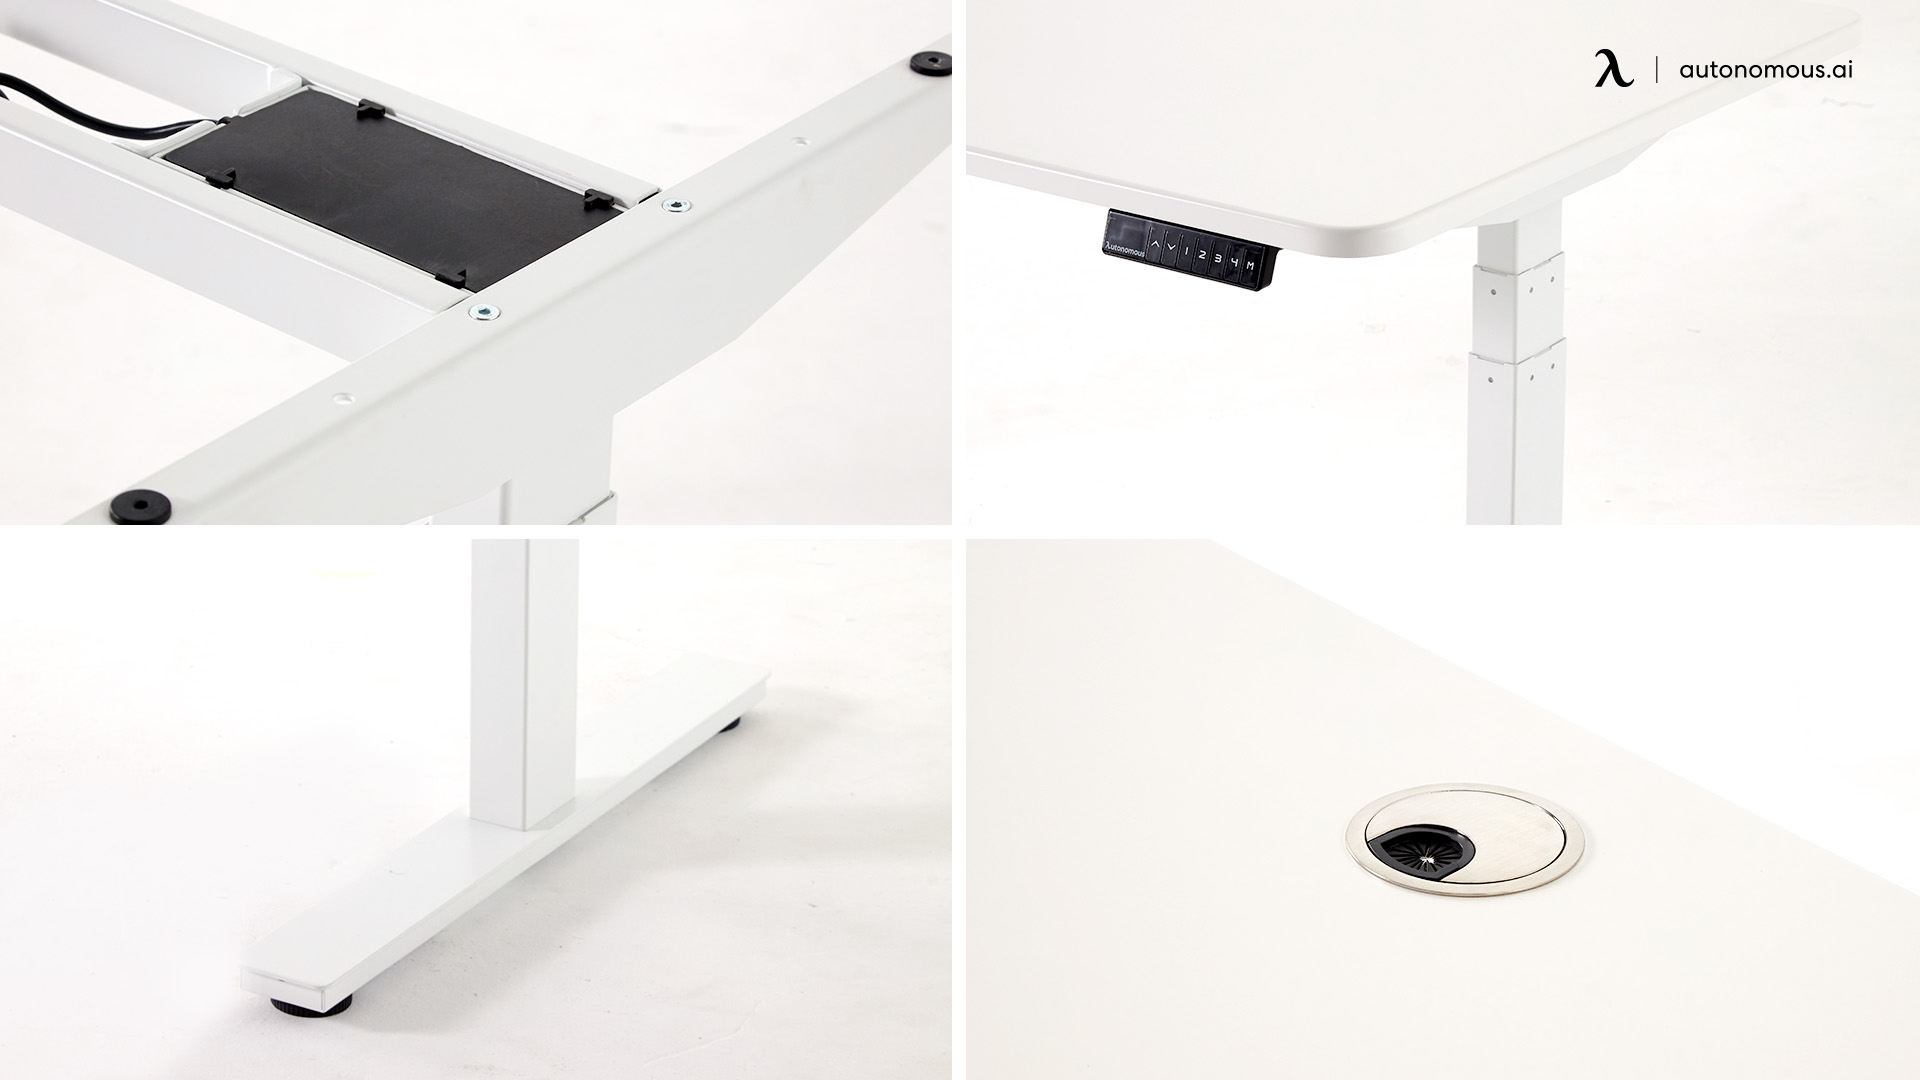 Photo of Smartdesk 2 with highly functions